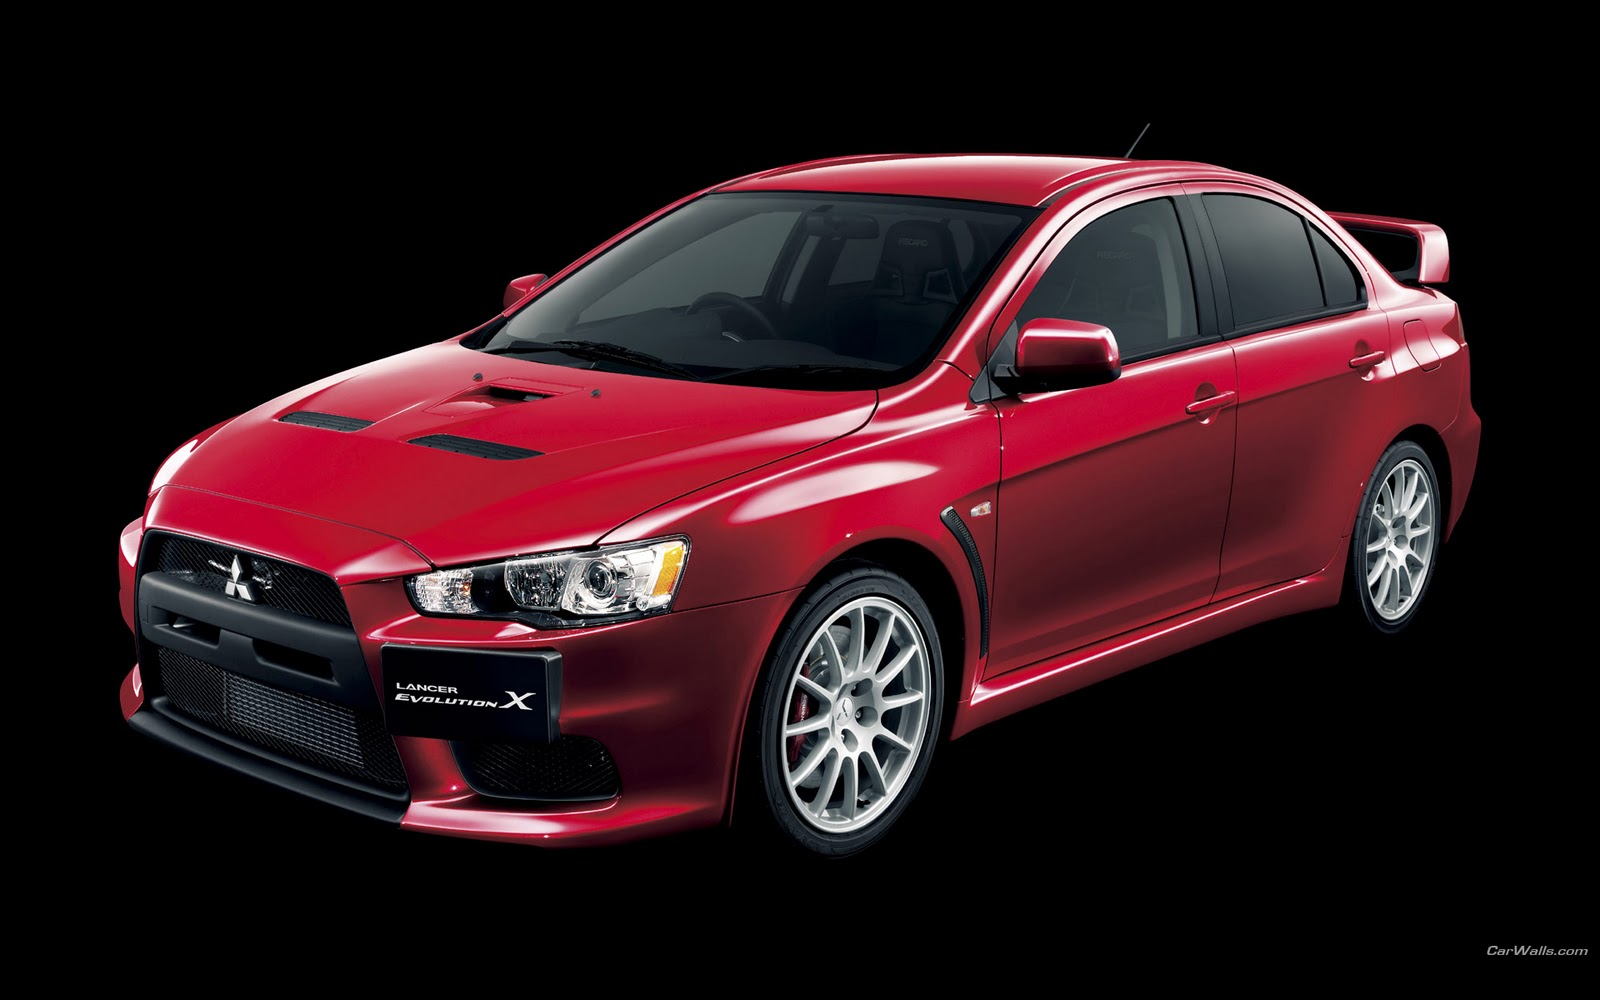 All Types Of Autos: Mitsubishi cars wallpapers